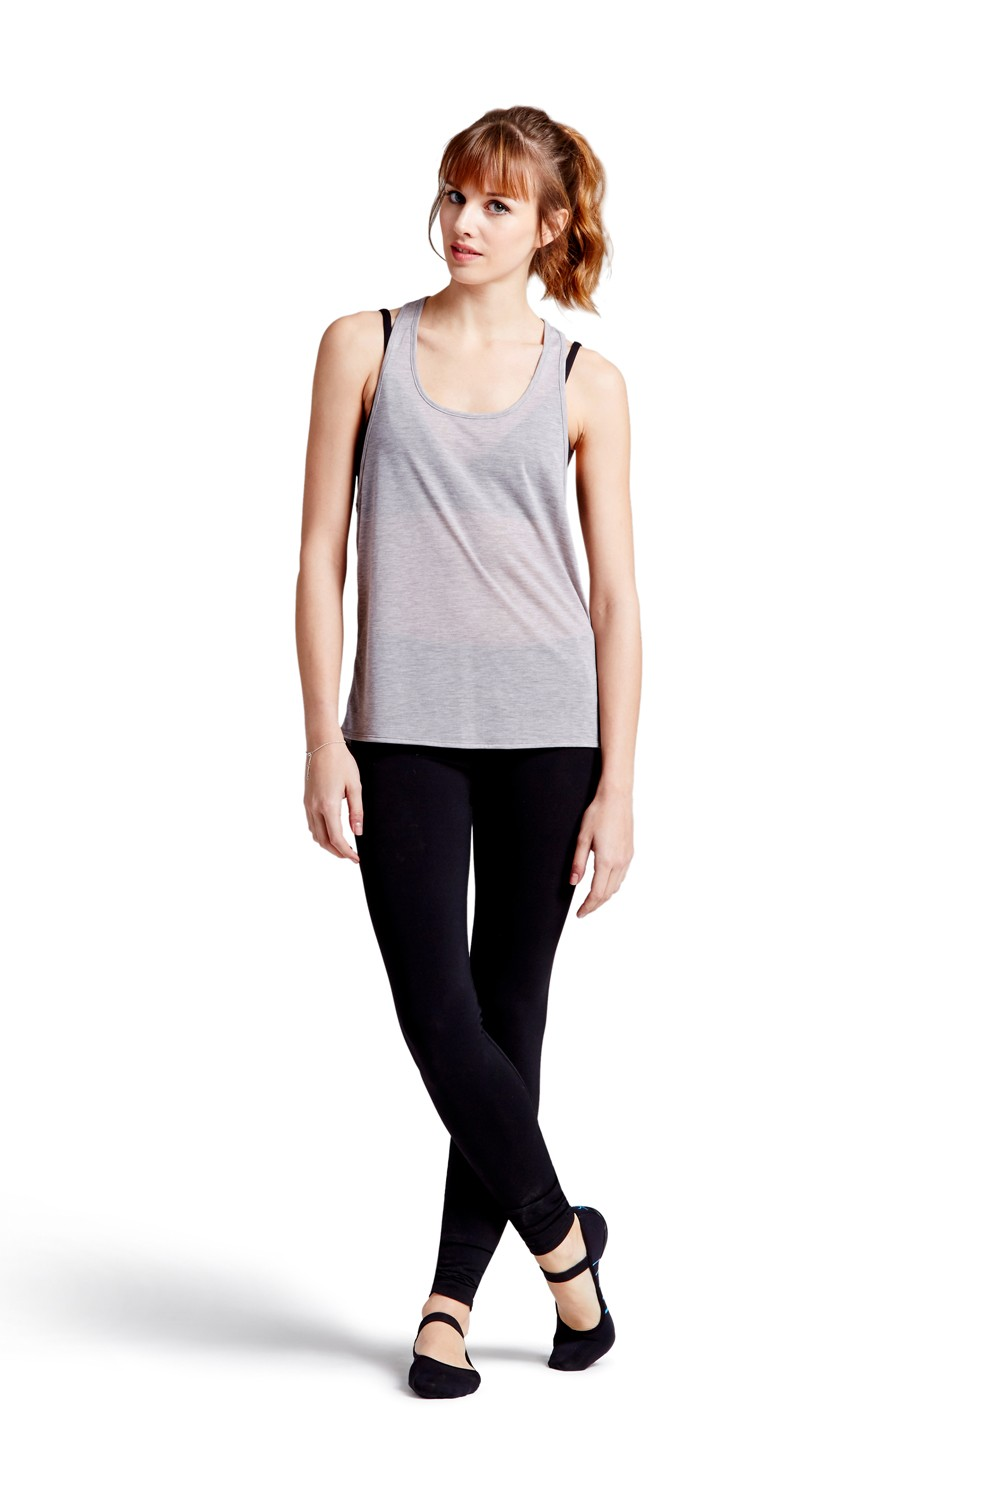 Action Back Loose Top Women's Tops